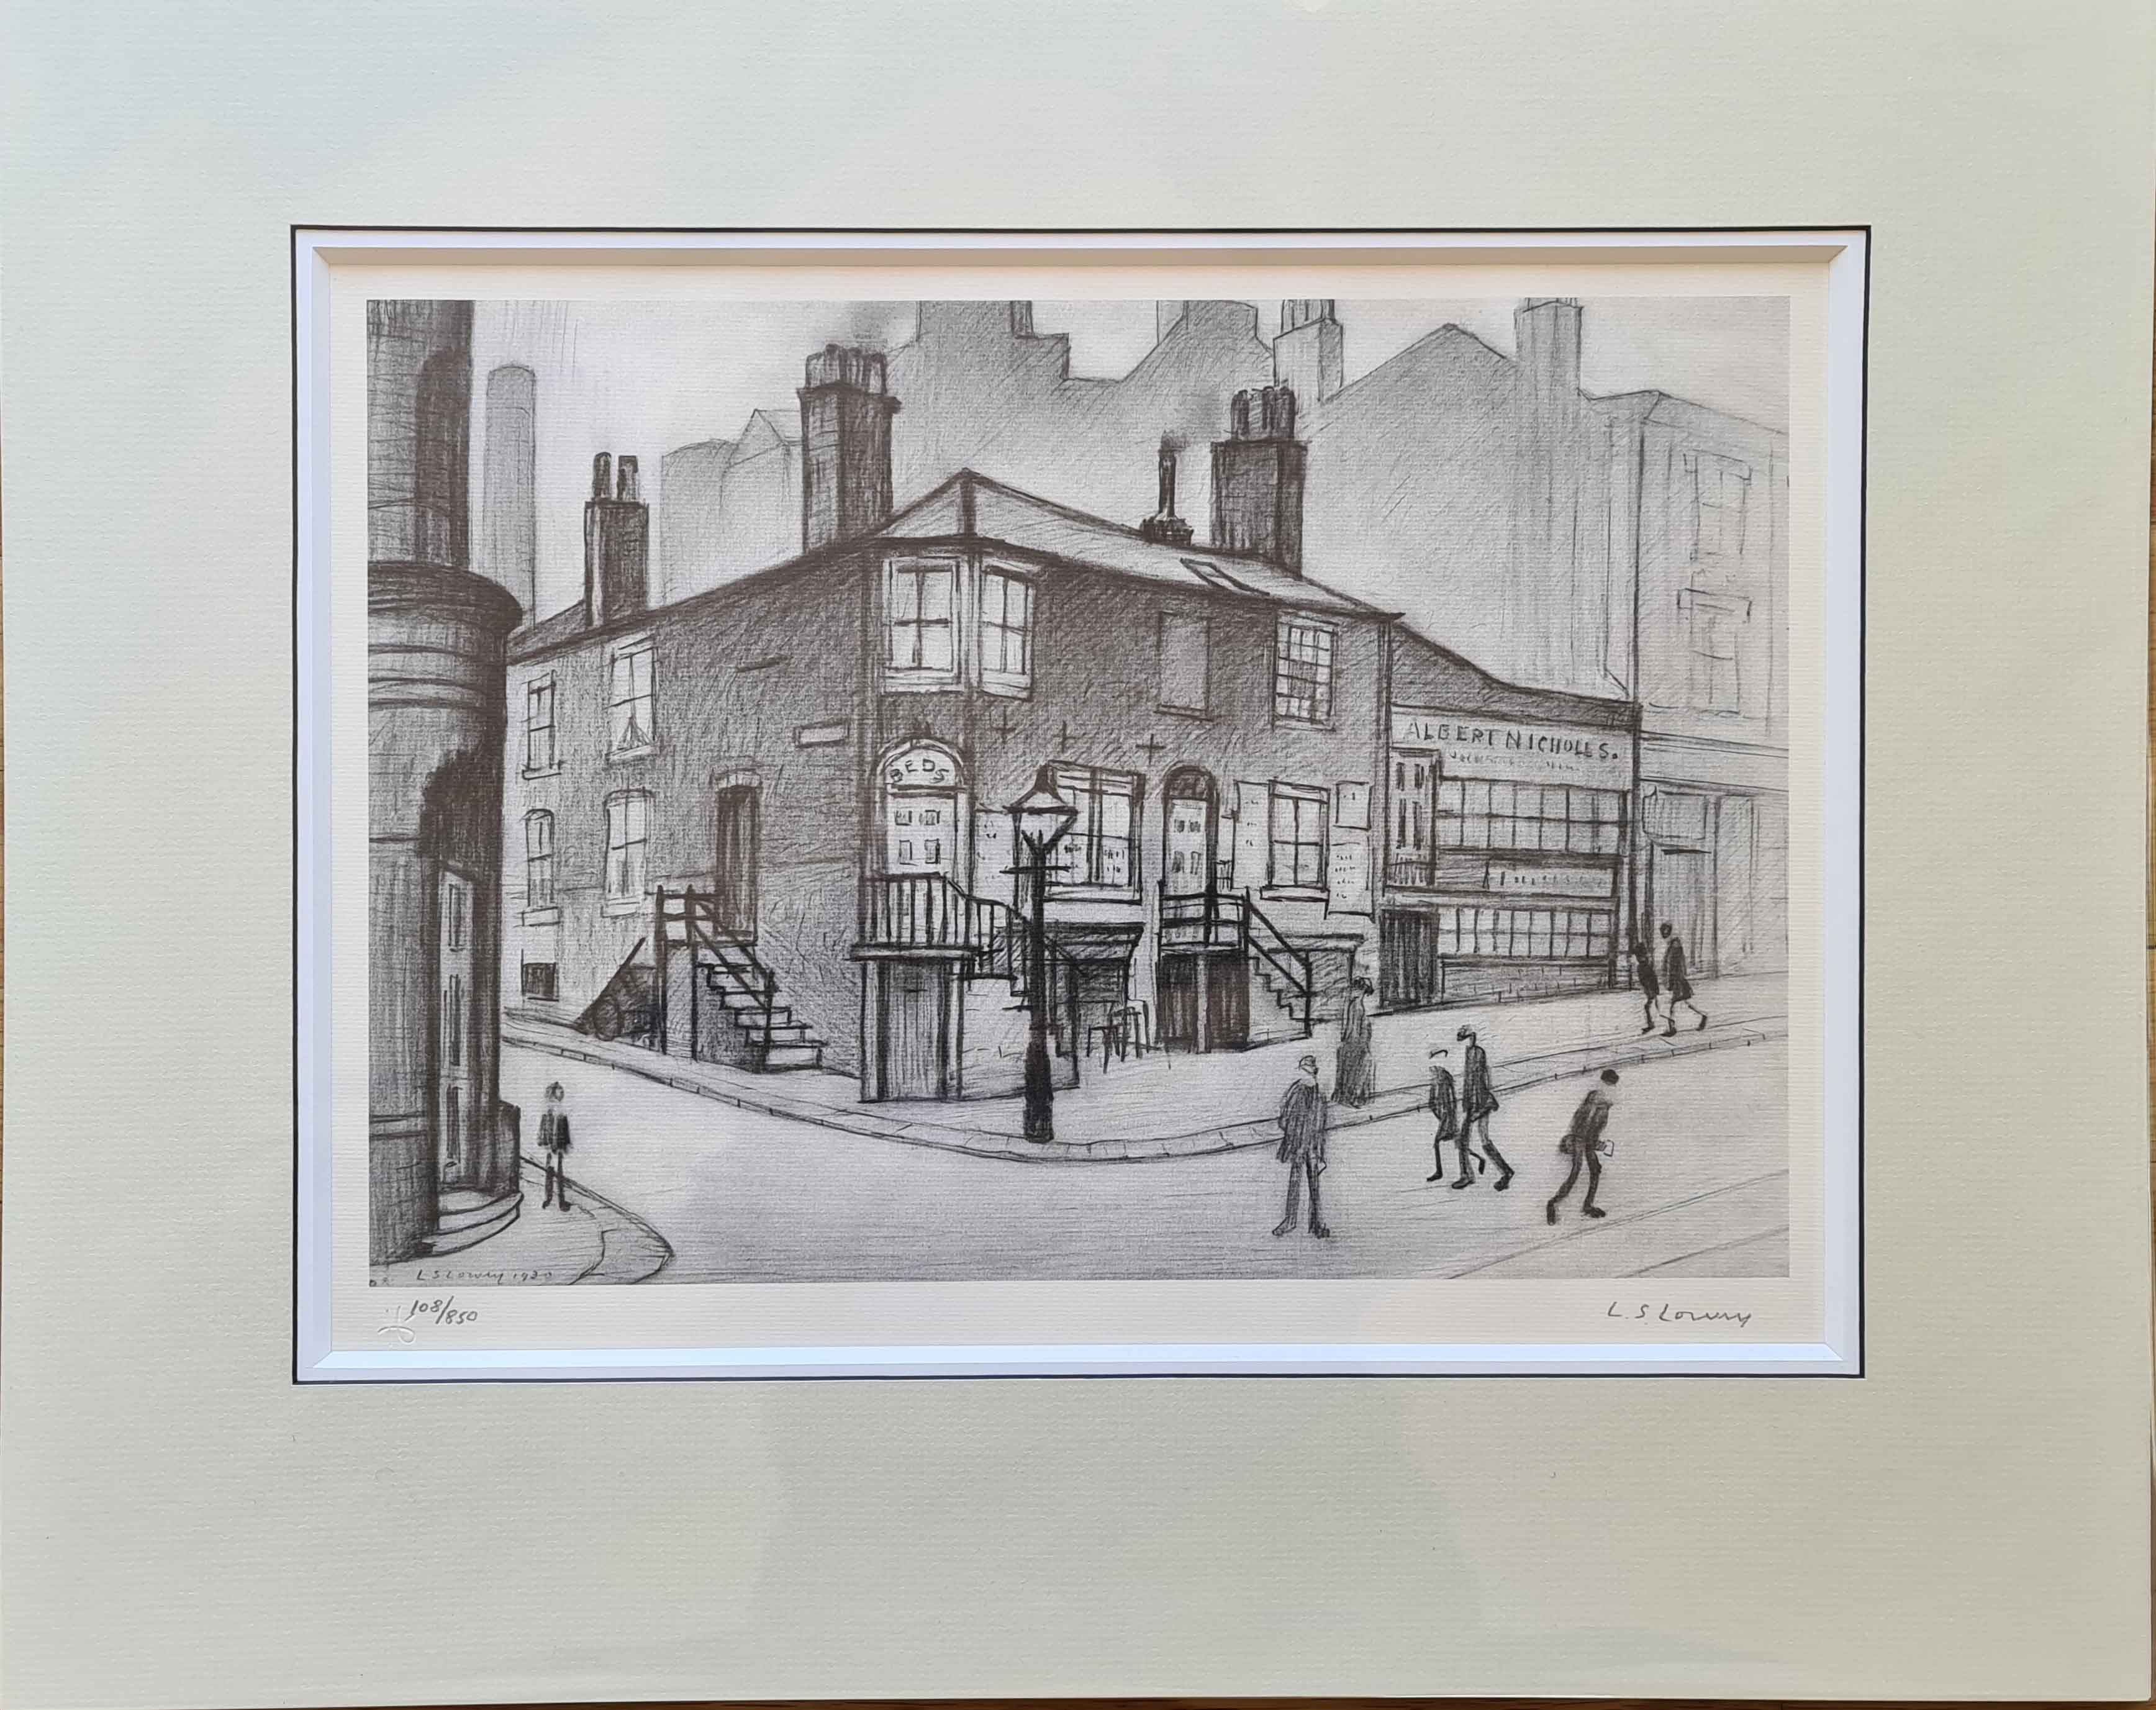 lowry great Ancoats street signed print mounted